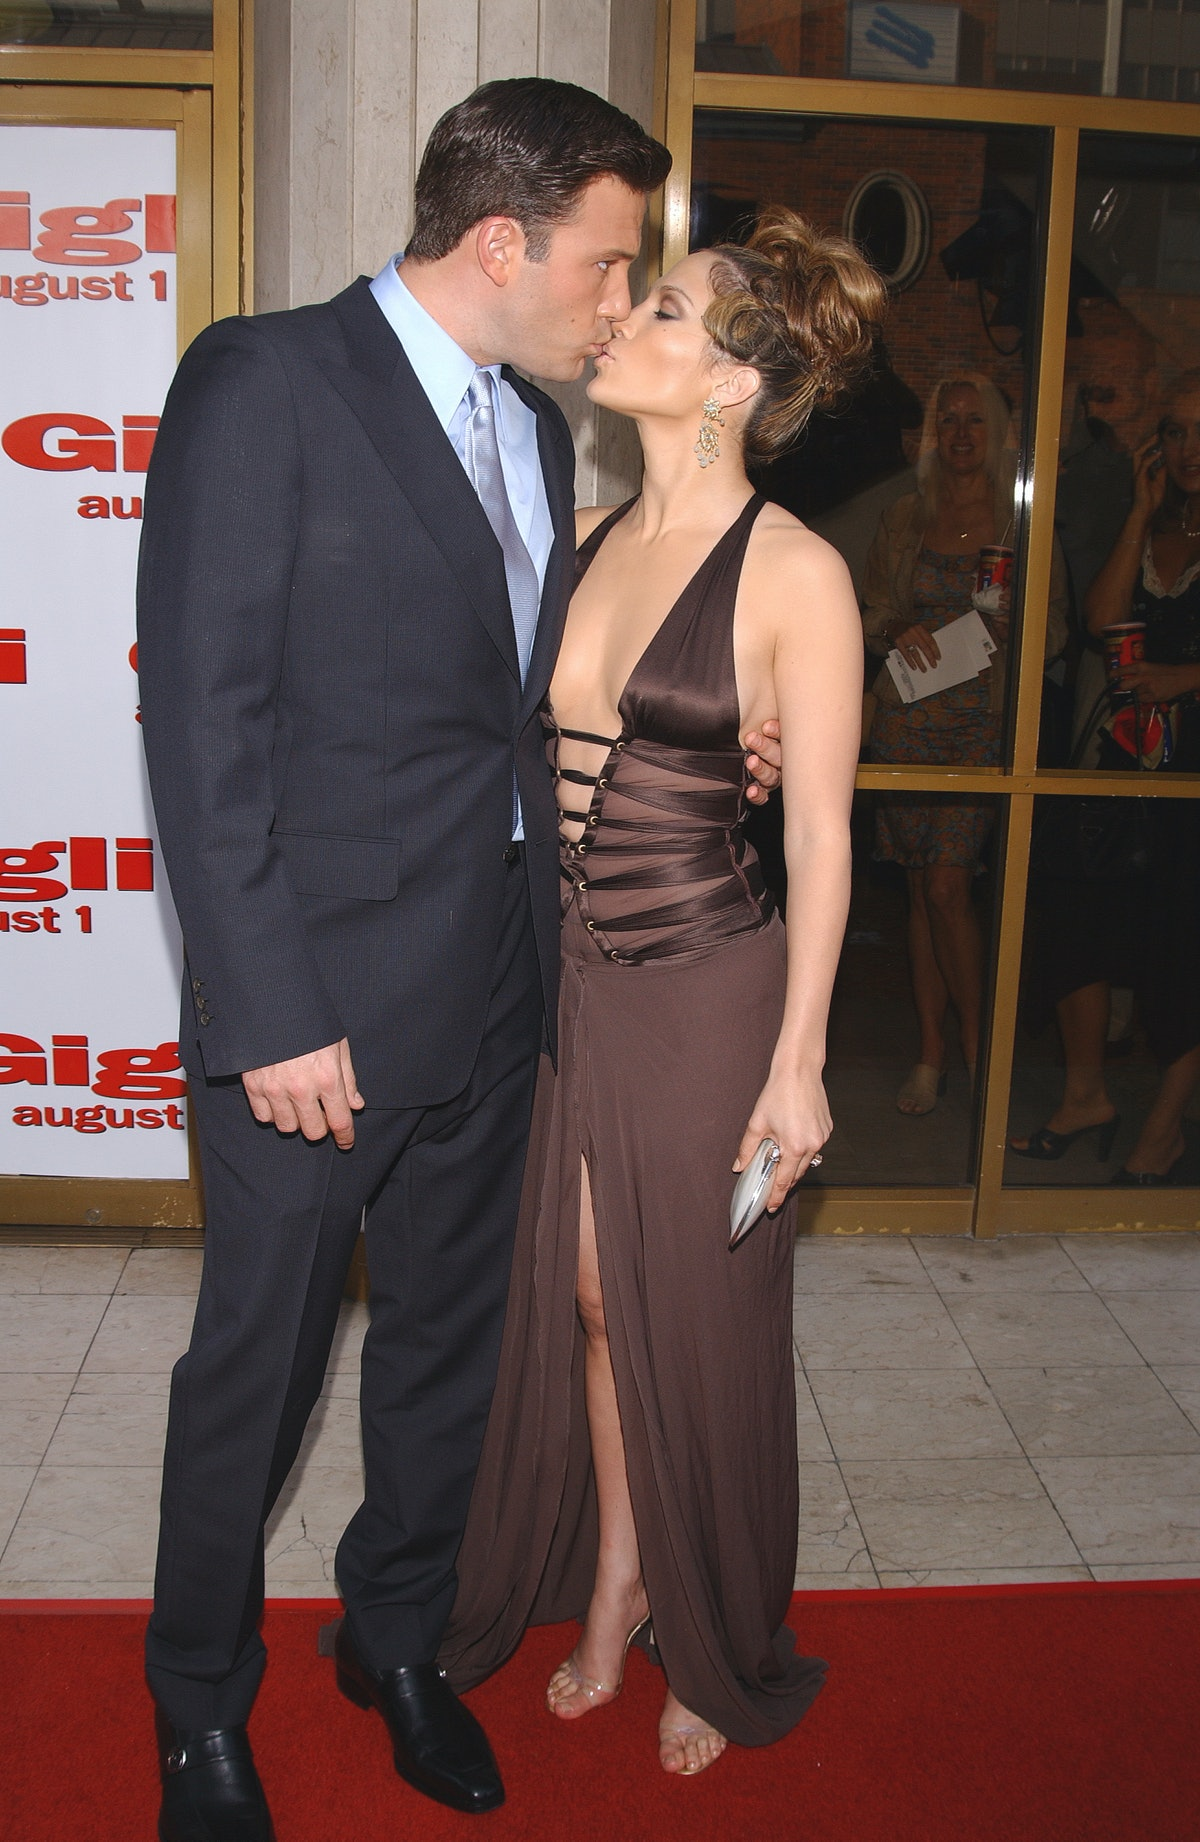 """Ben Affleck and Jennifer Lopez (dress by Gucci) arriving at the premiere of """"Gigli""""."""